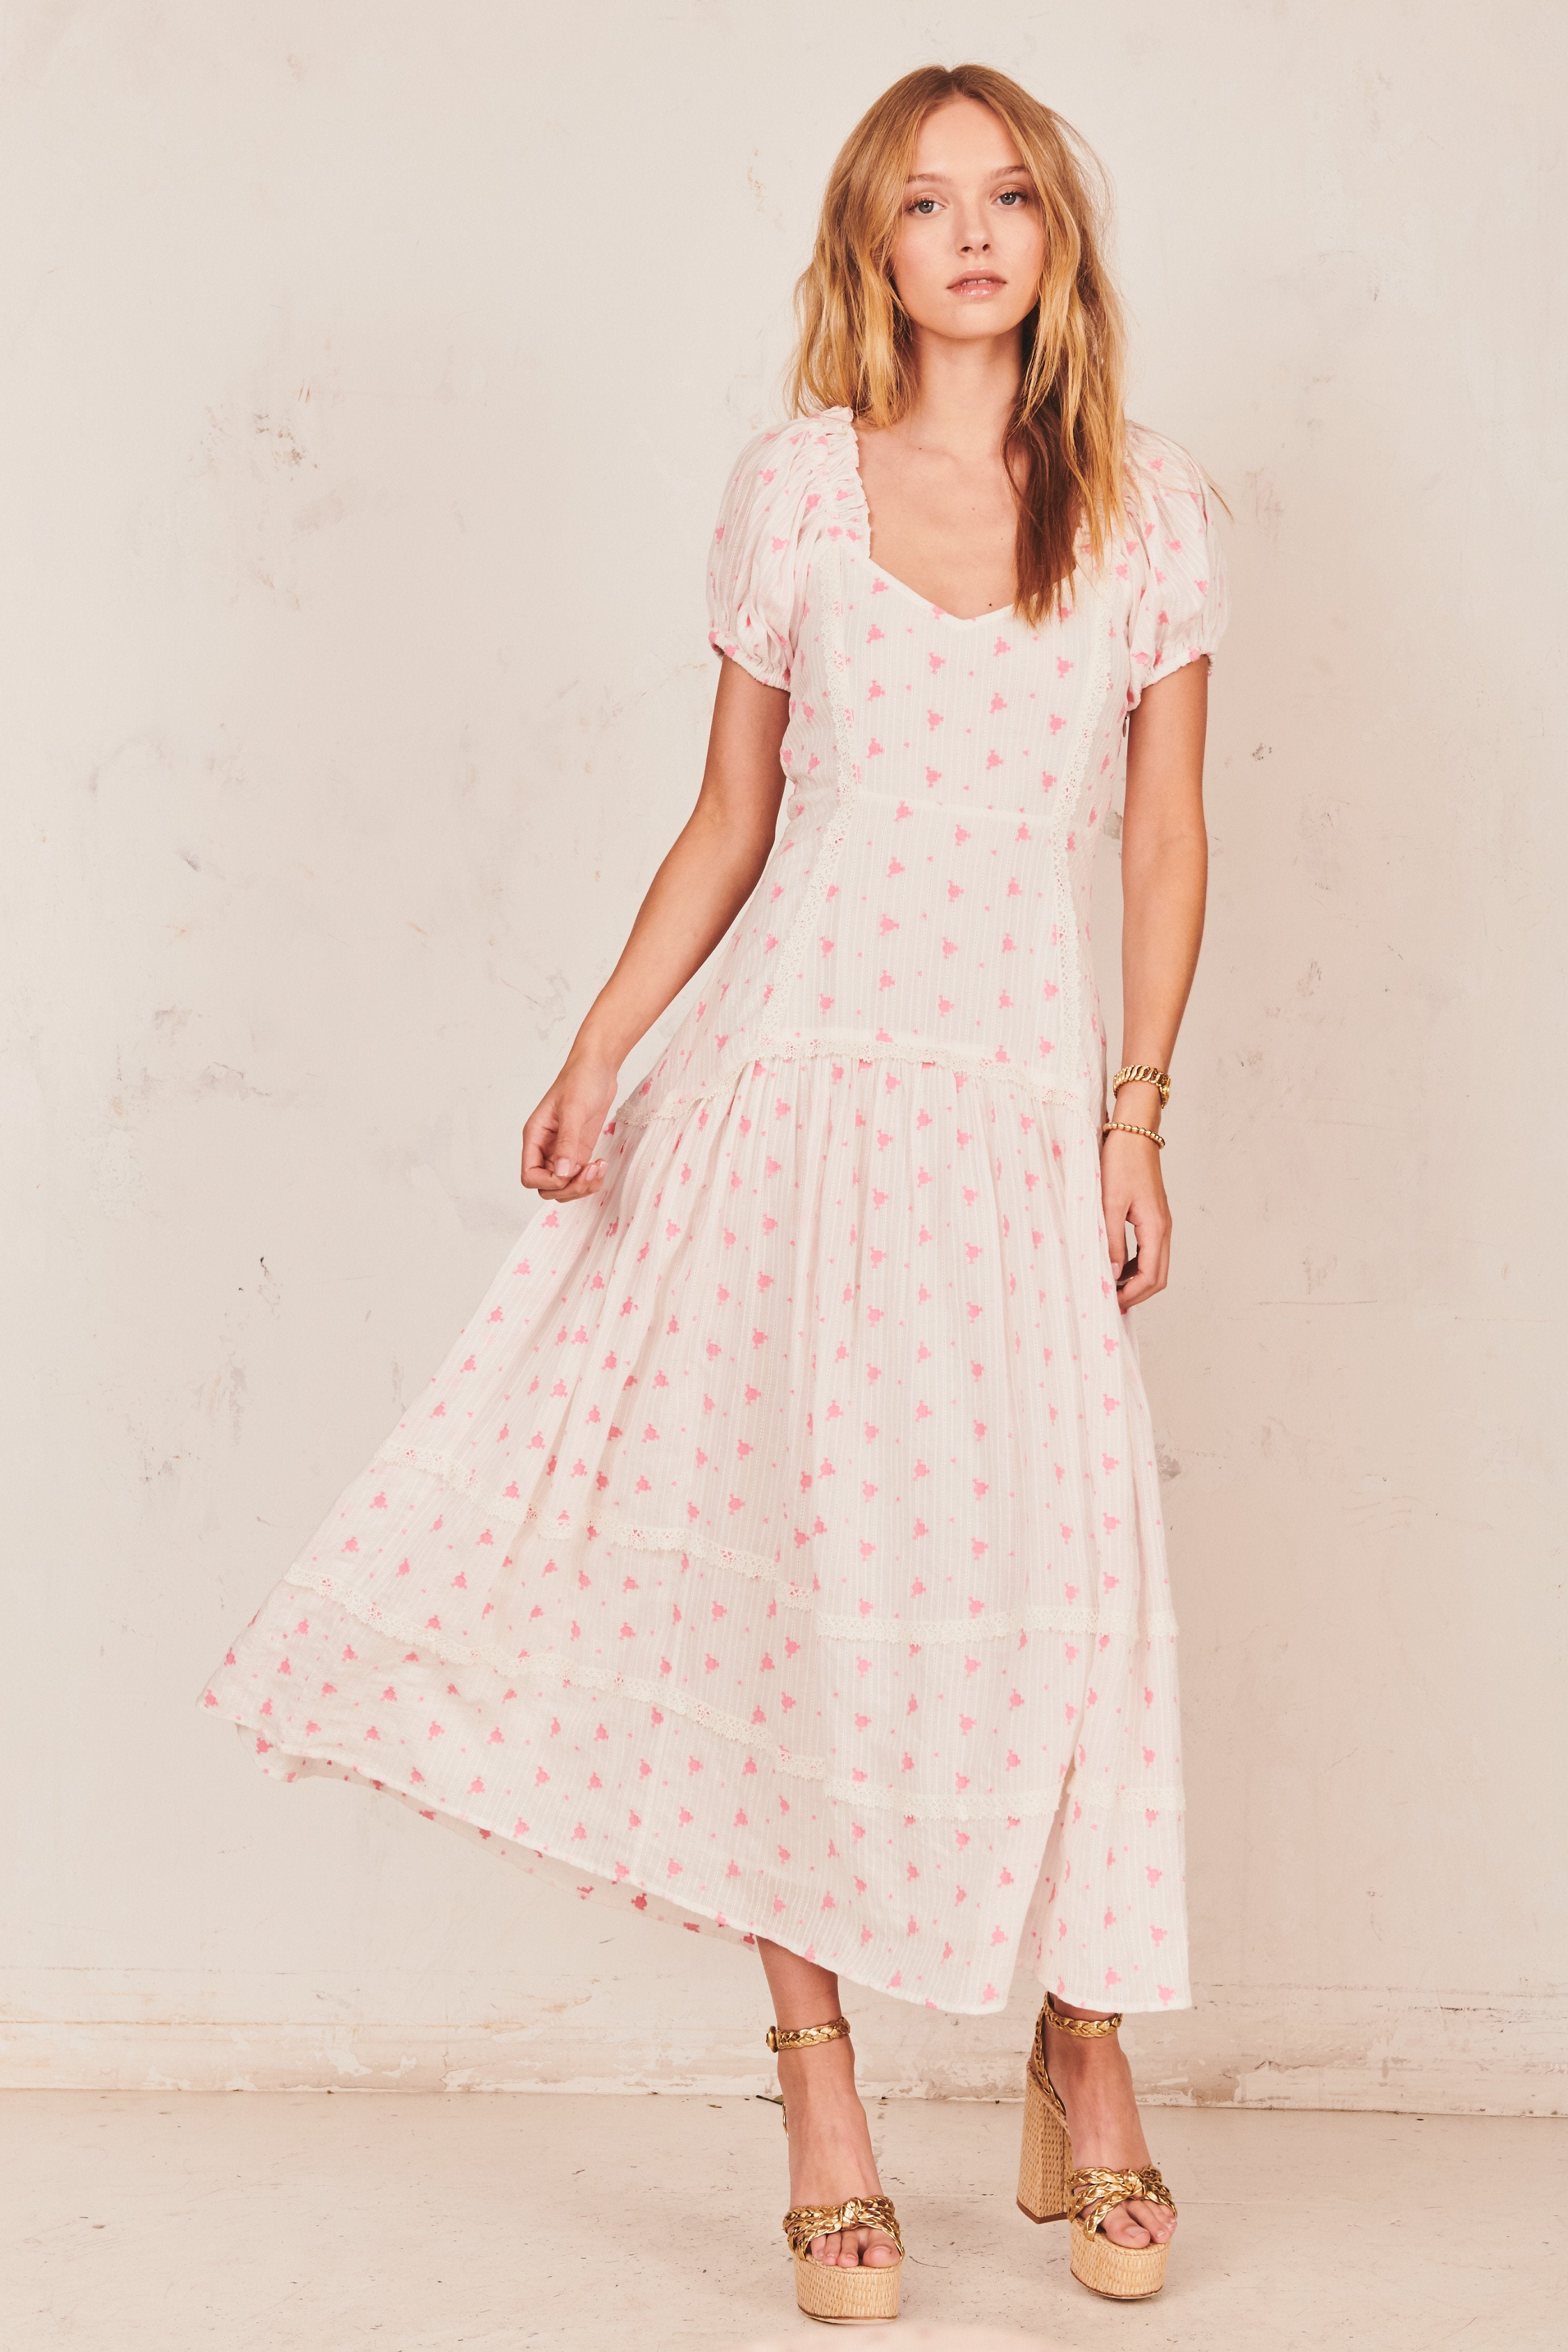 Jeanette Dress-Pebble Pink